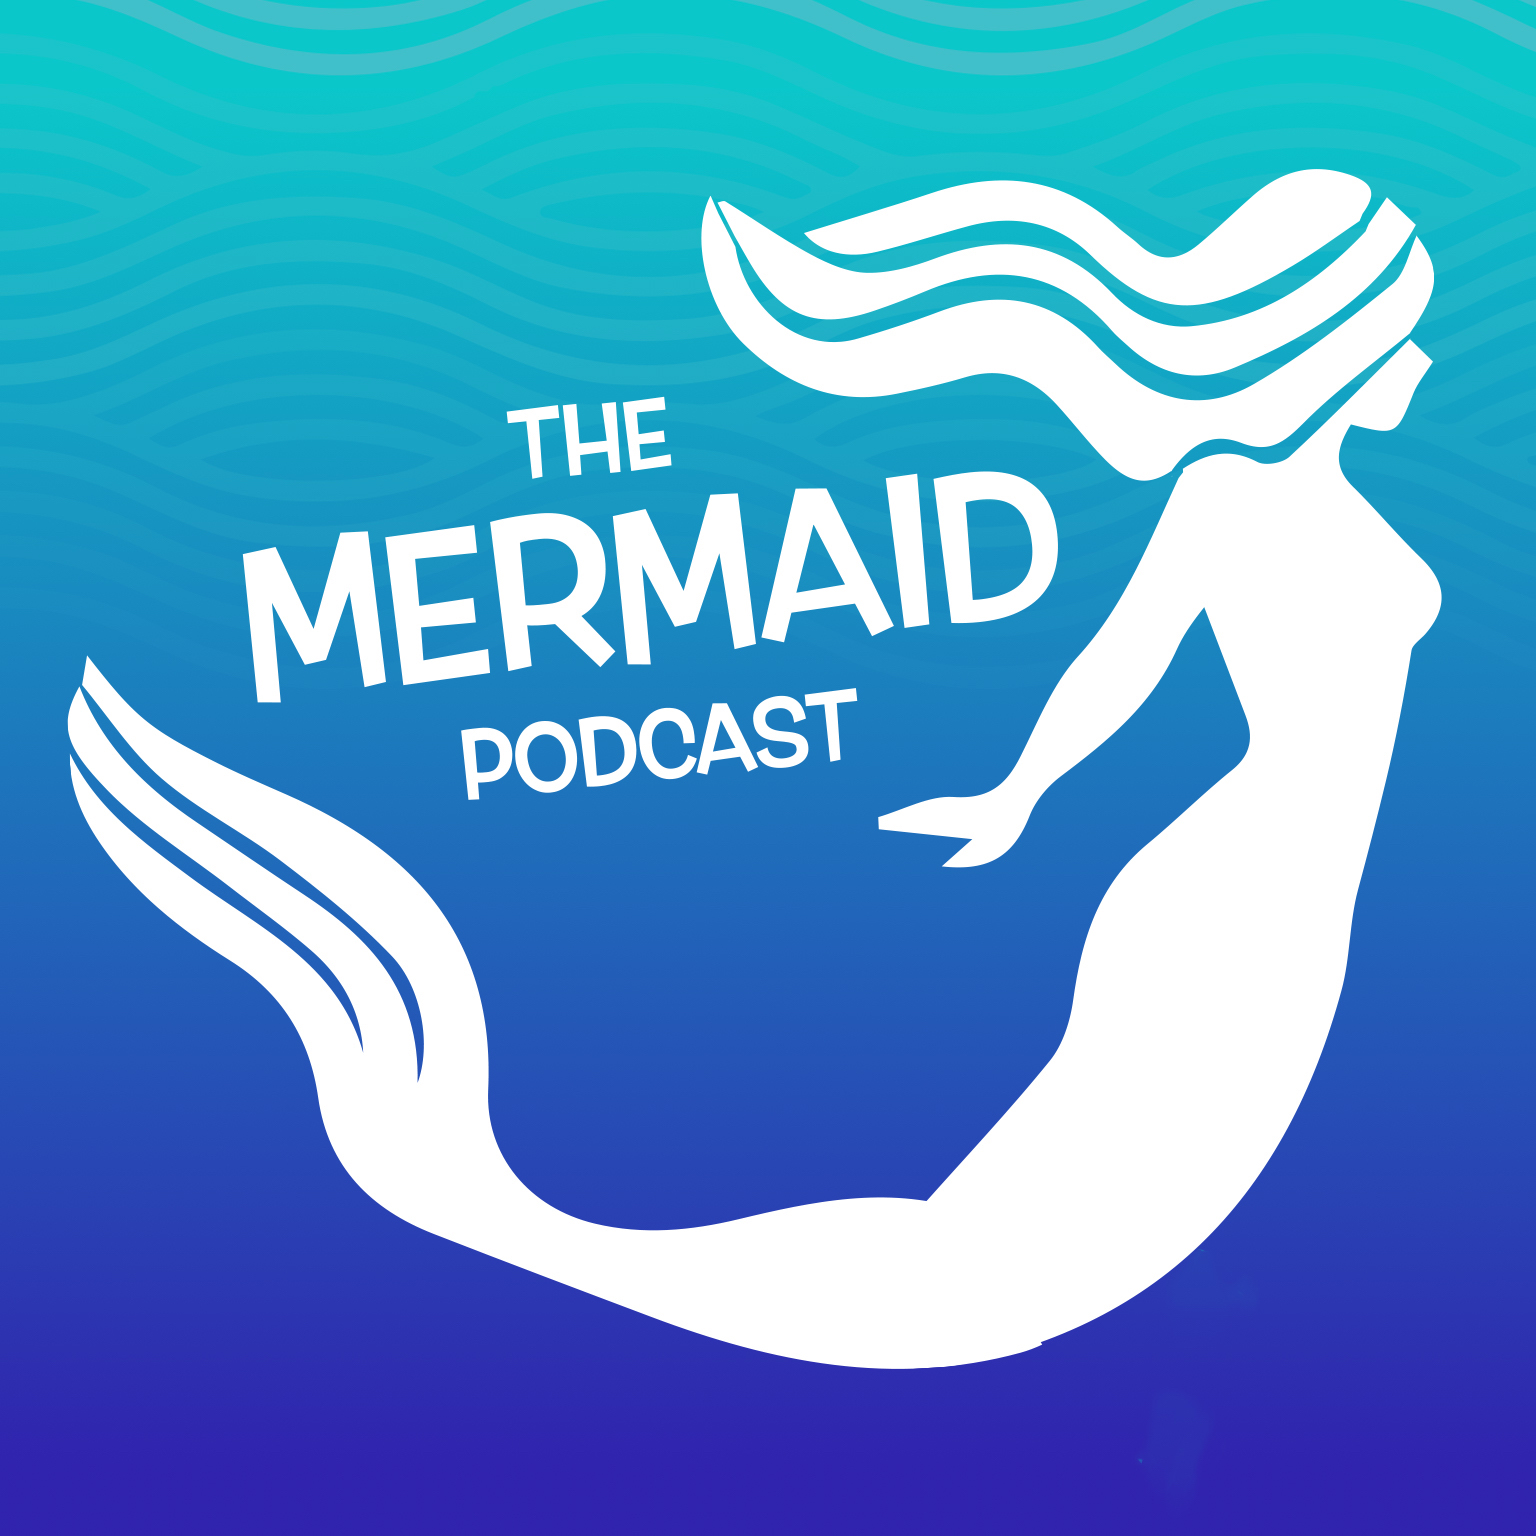 The Mermaid Podcast